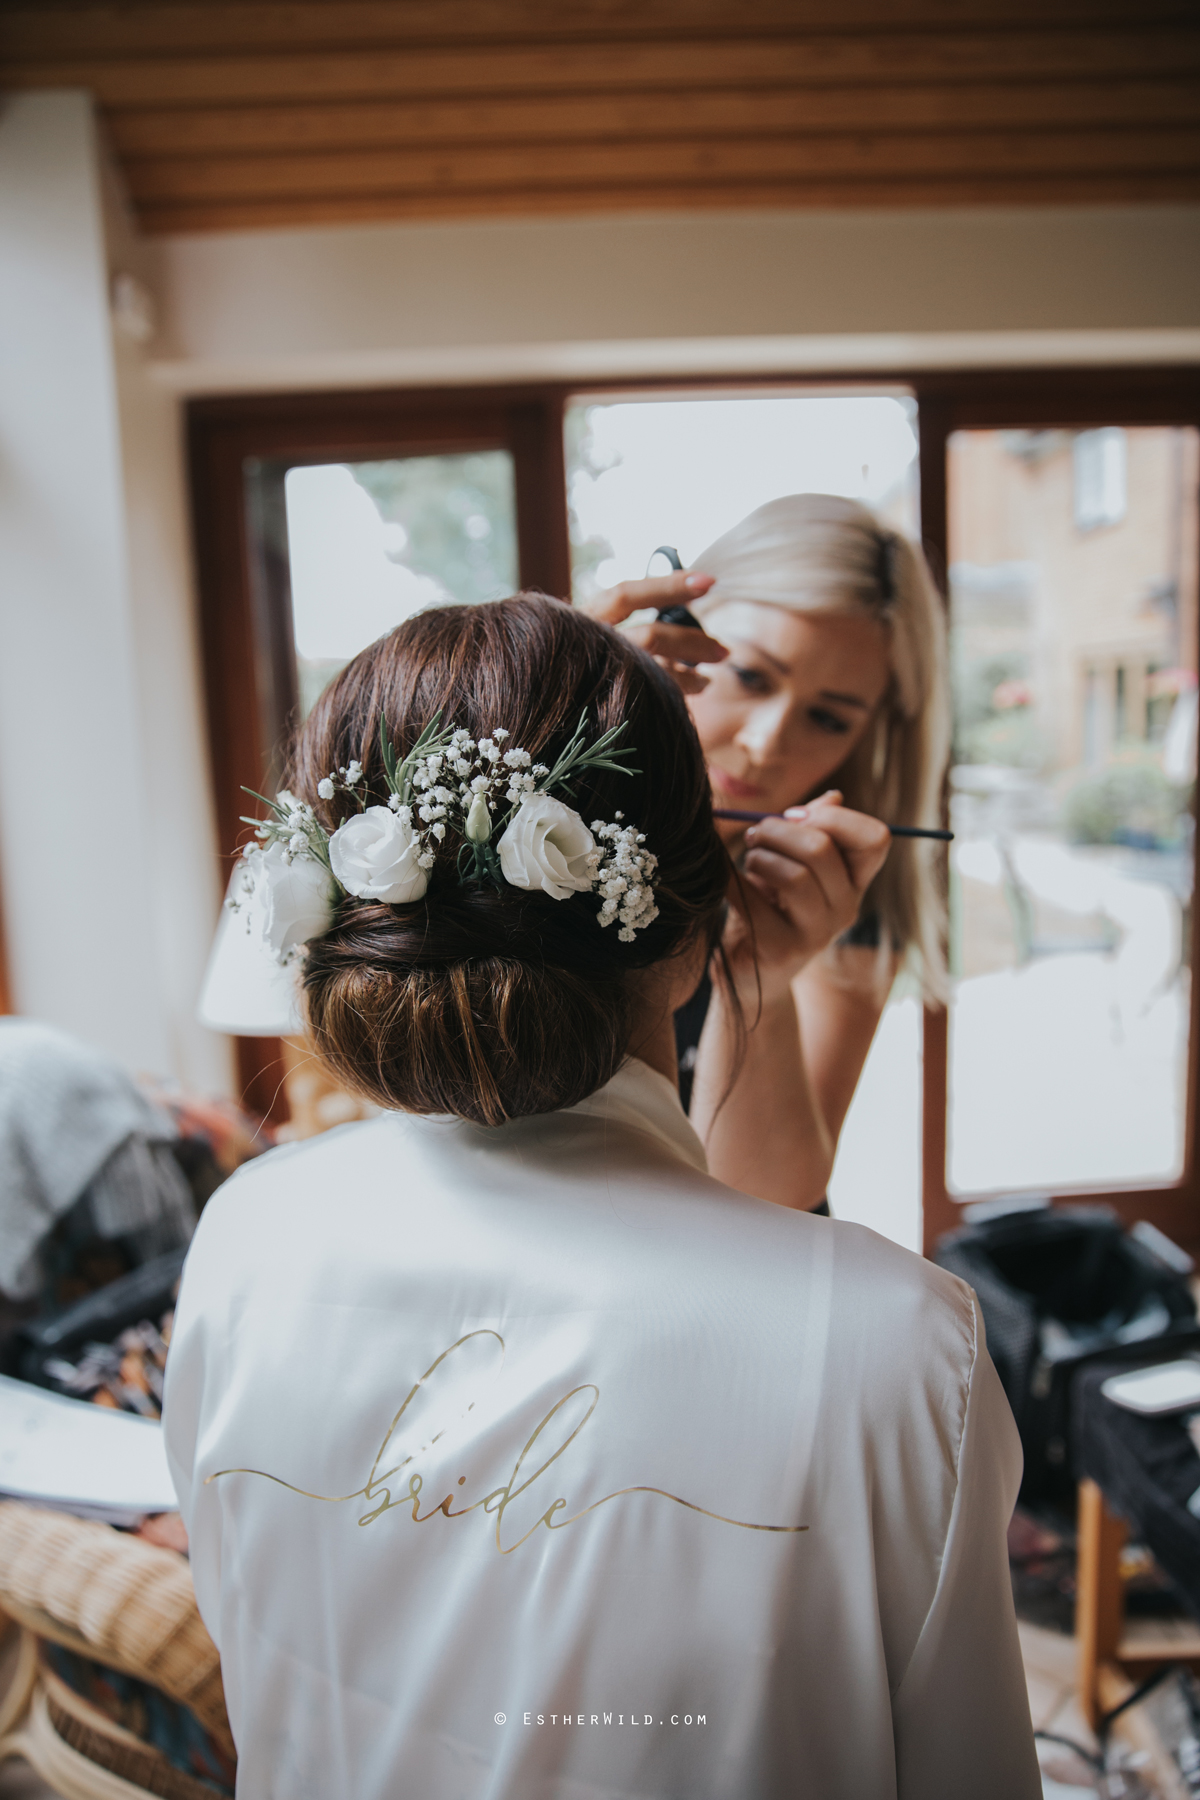 Wootton_Wedding_Copyright_Esther_Wild_Photographer_IMG_0430.jpg